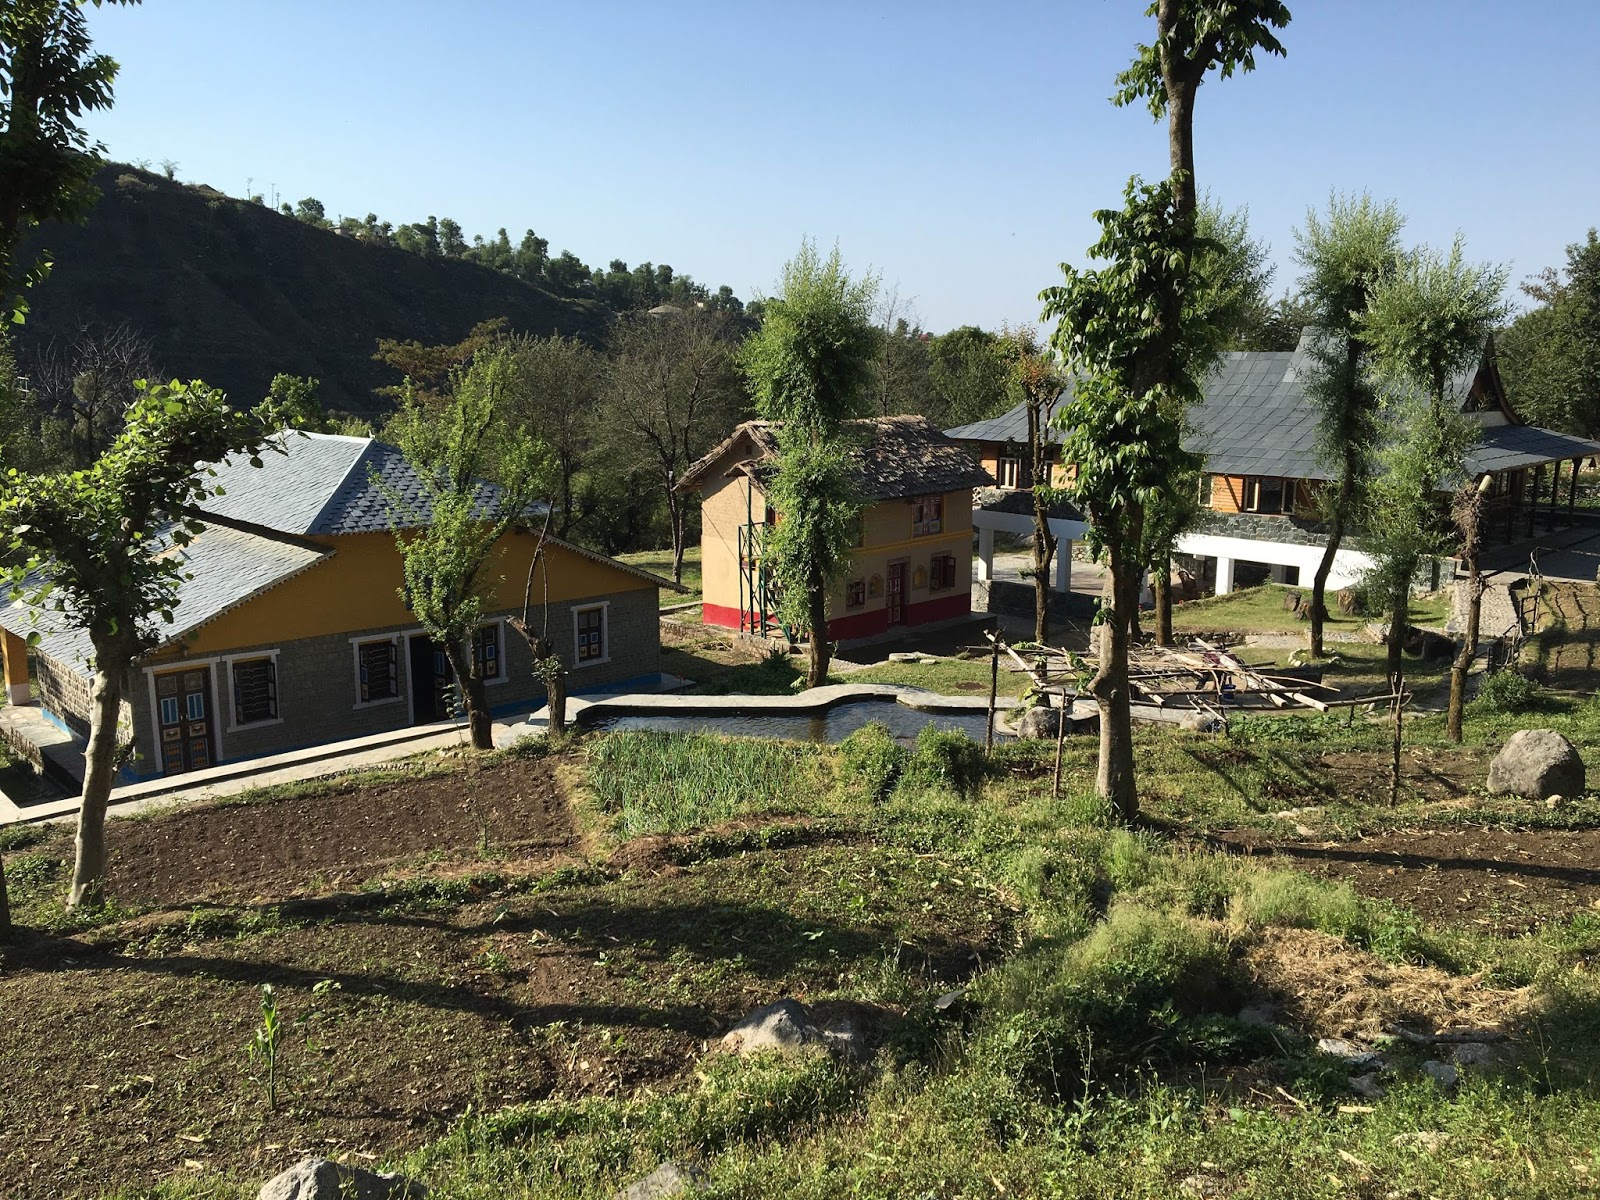 Himachal Heritage Village In Palampur Pradesh A Relaxing Authentic Himachali Style Cottage Resort